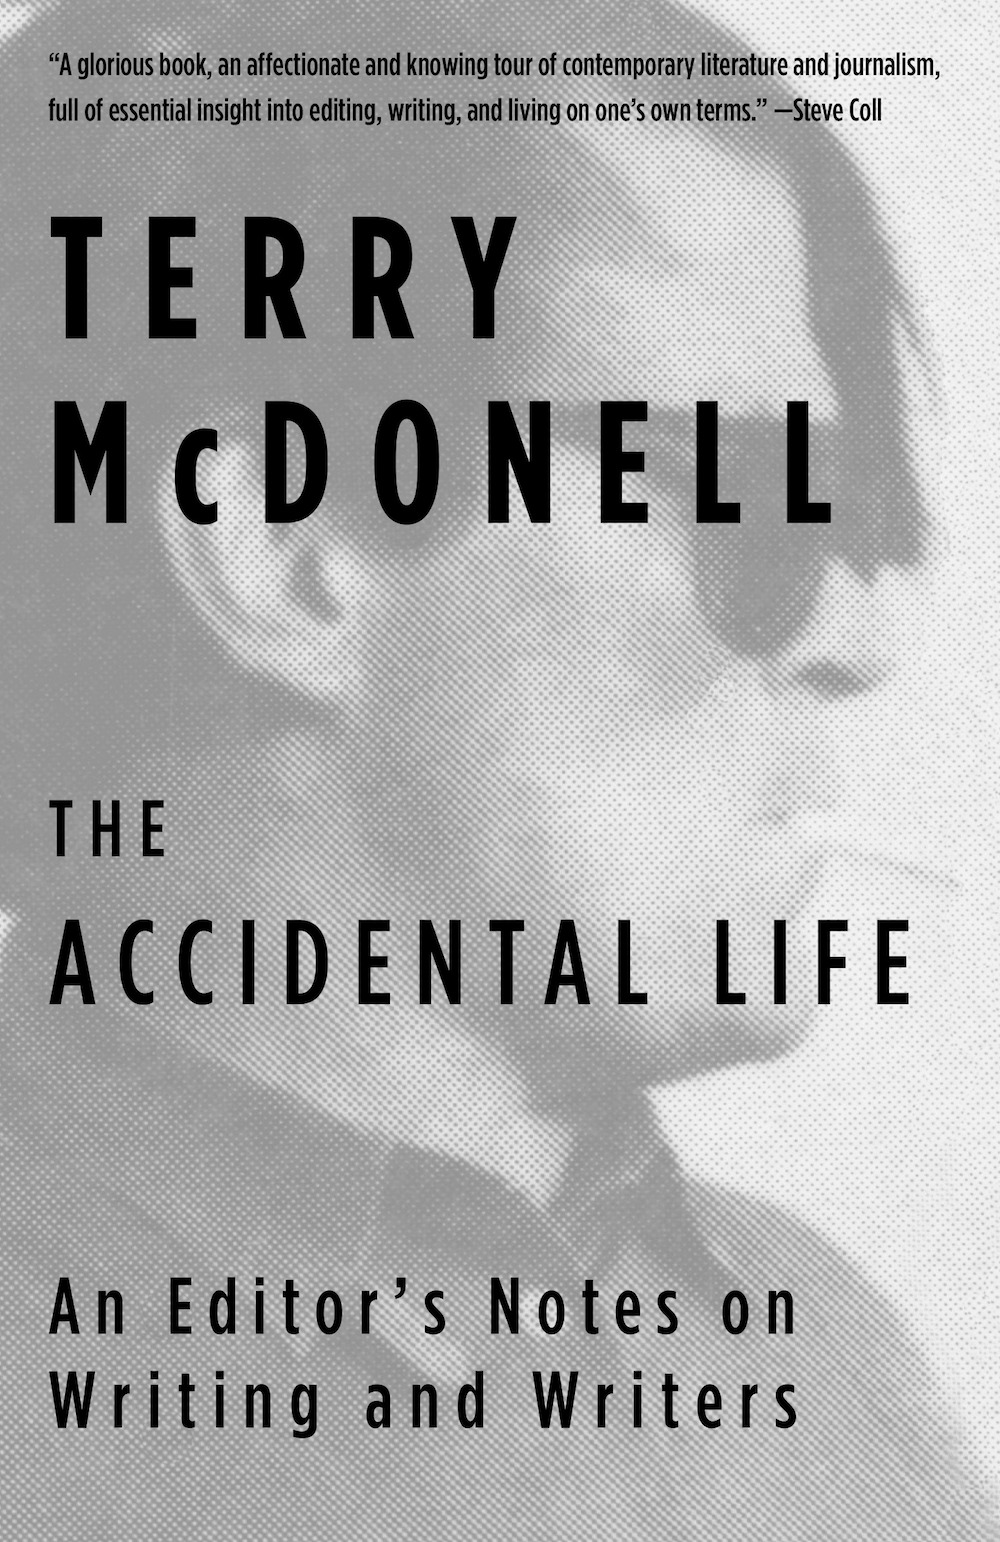 The Accidental Life Cover copy 2.jpg